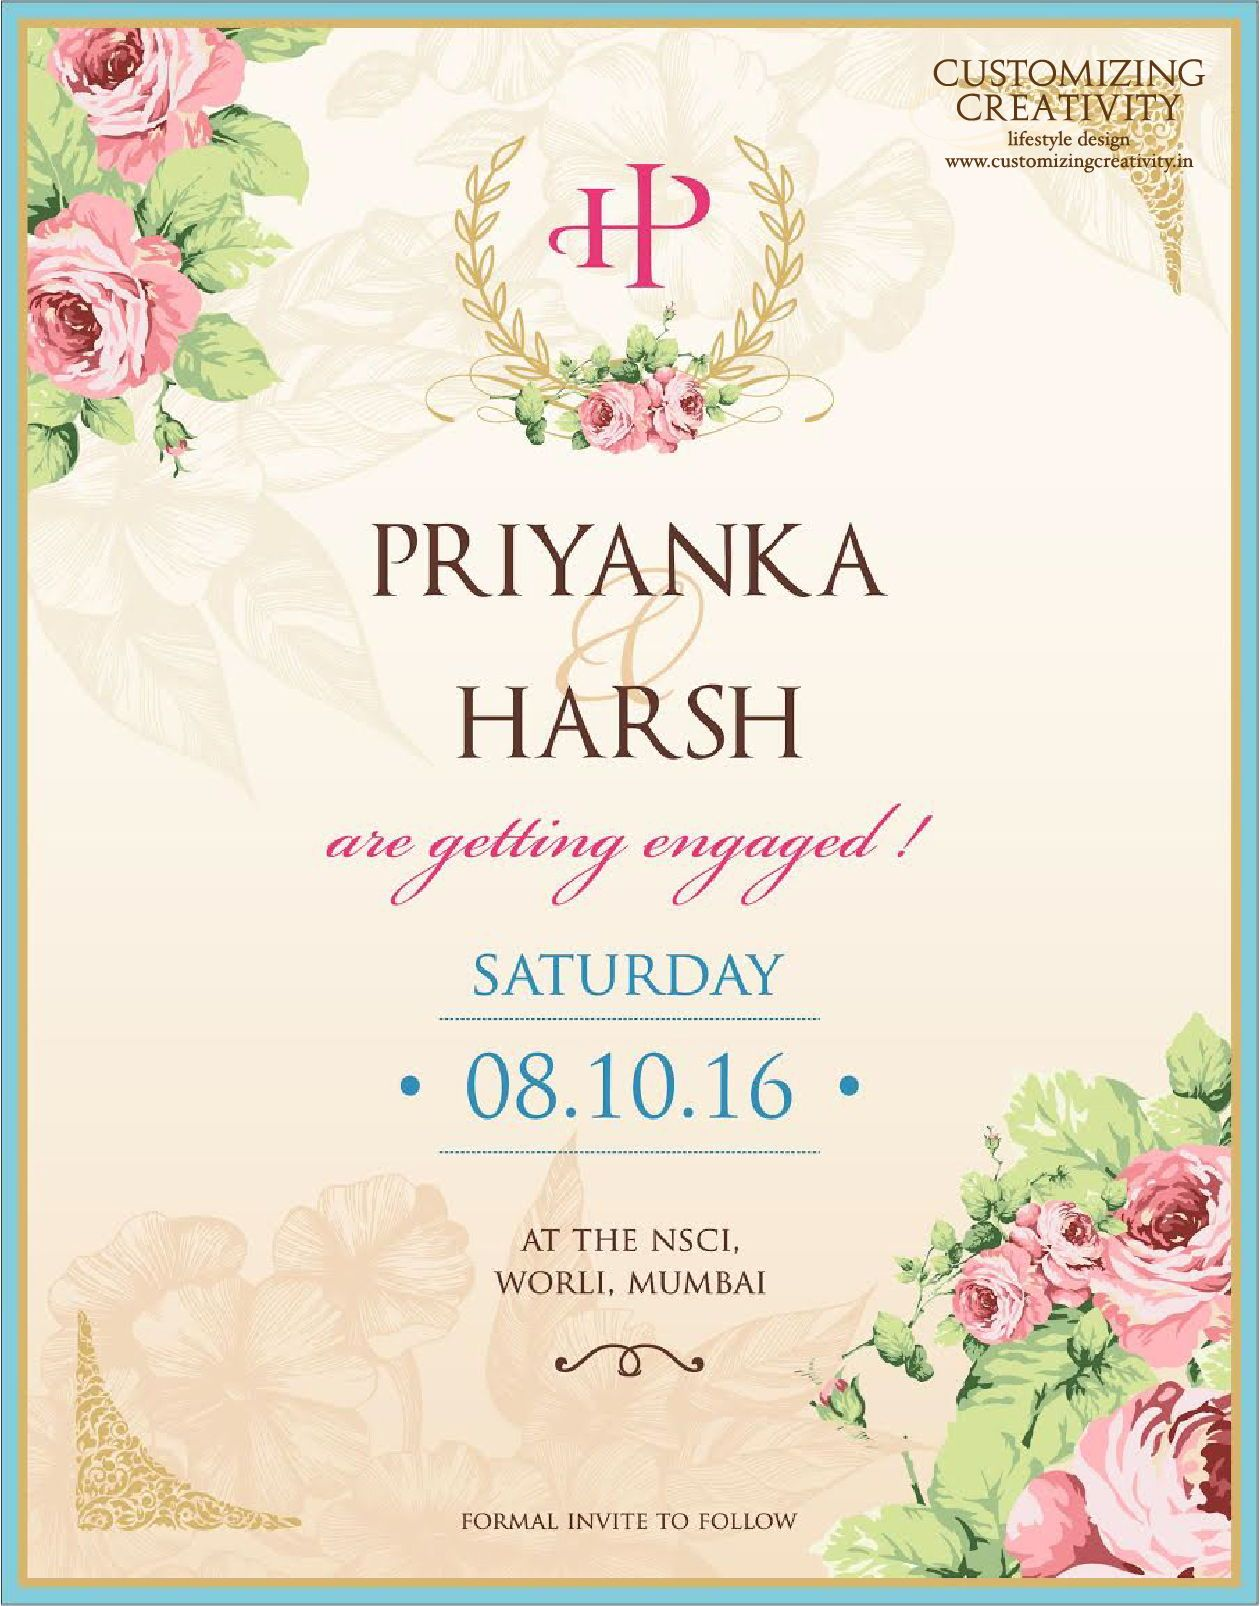 Wedding Invitation Cards Indian Wedding Cards Invites Wedding Stationery Indian Wedding Invitation Cards Wedding Card Design Indian Marriage Invitation Card